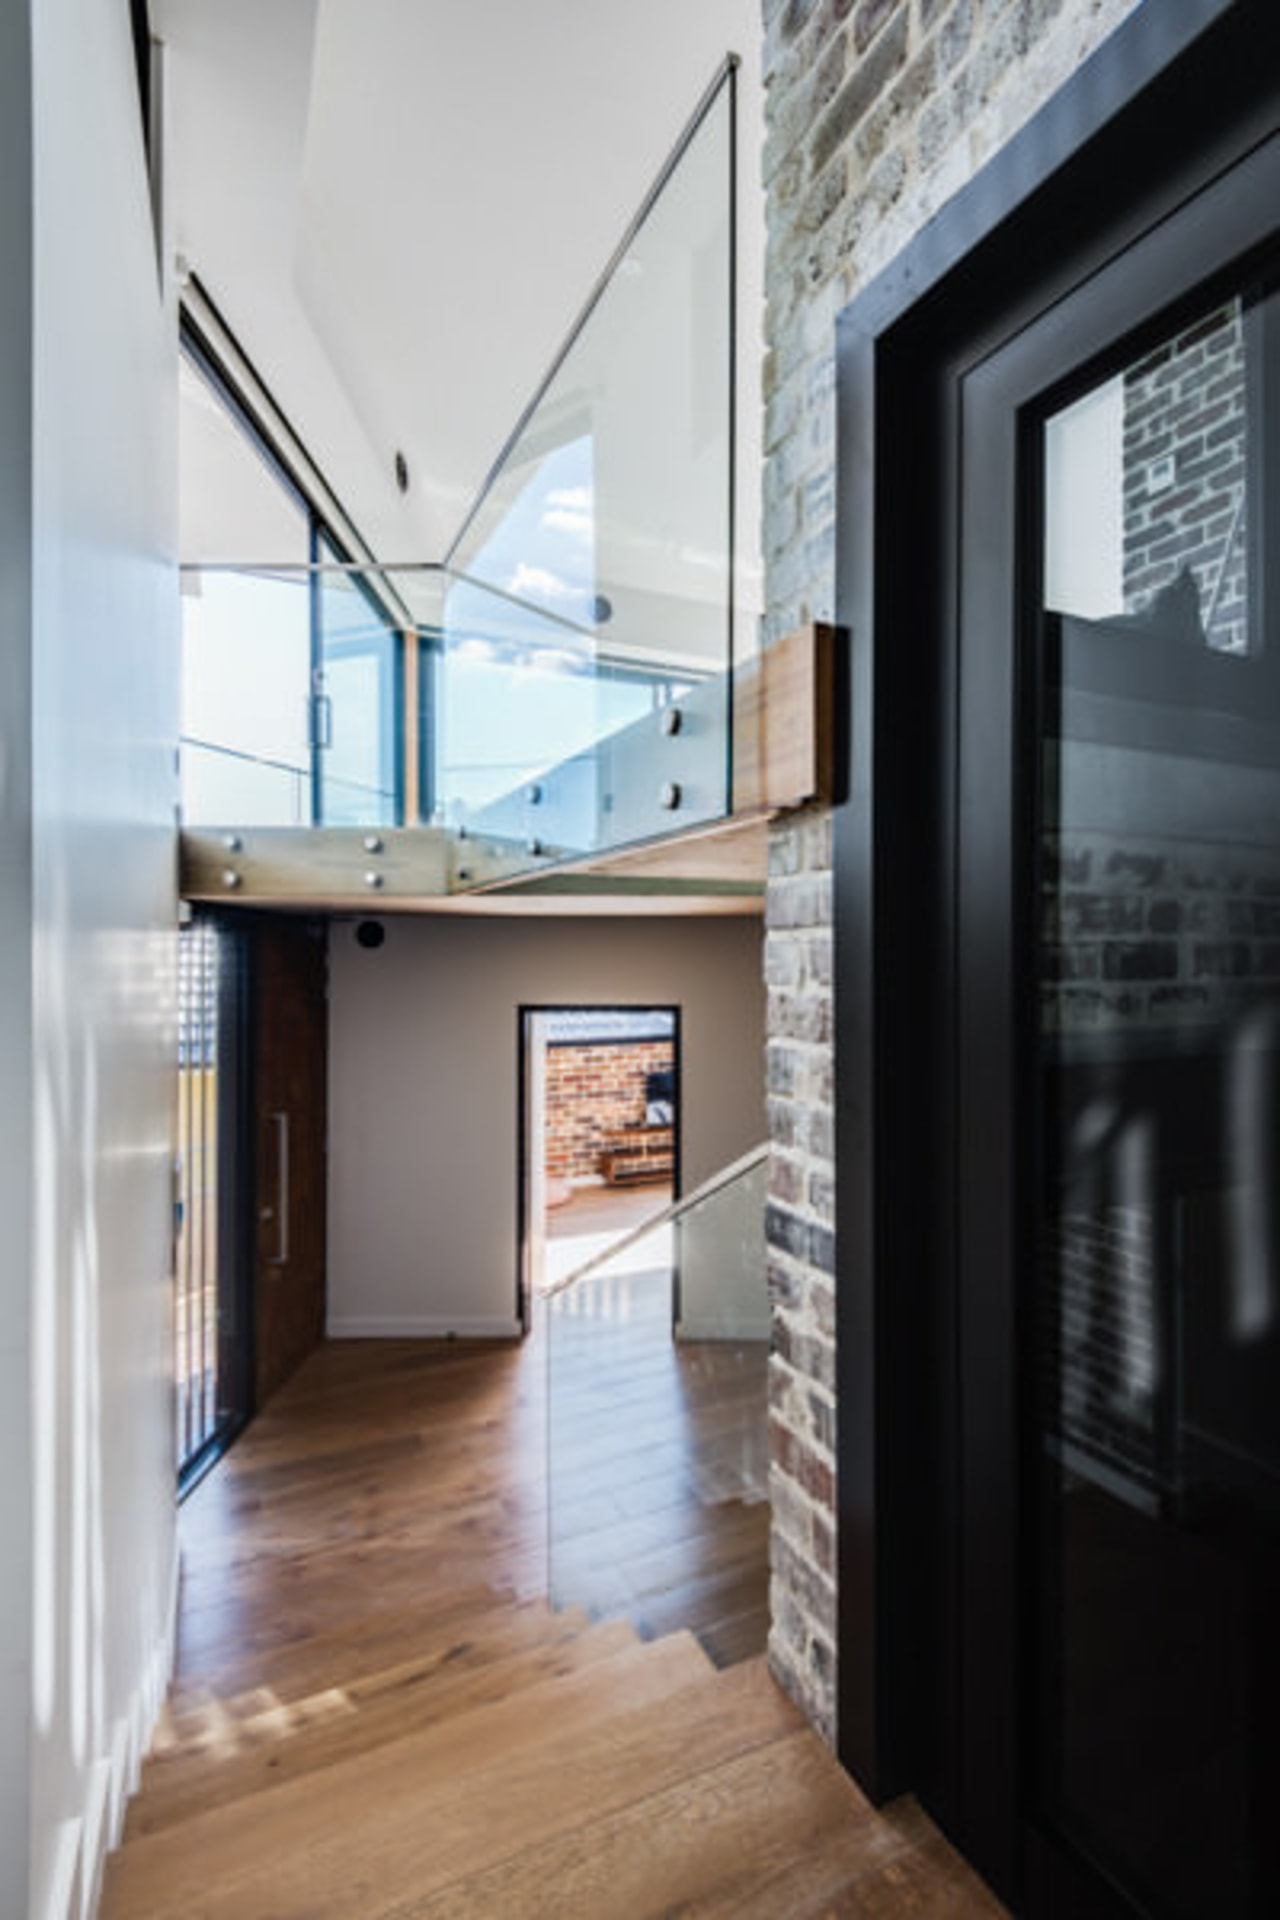 A glass balustrade allows light to flow throughout apartment, architecture, ceiling, daylighting, floor, flooring, hardwood, home, house, interior design, loft, real estate, window, wood flooring, gray, black